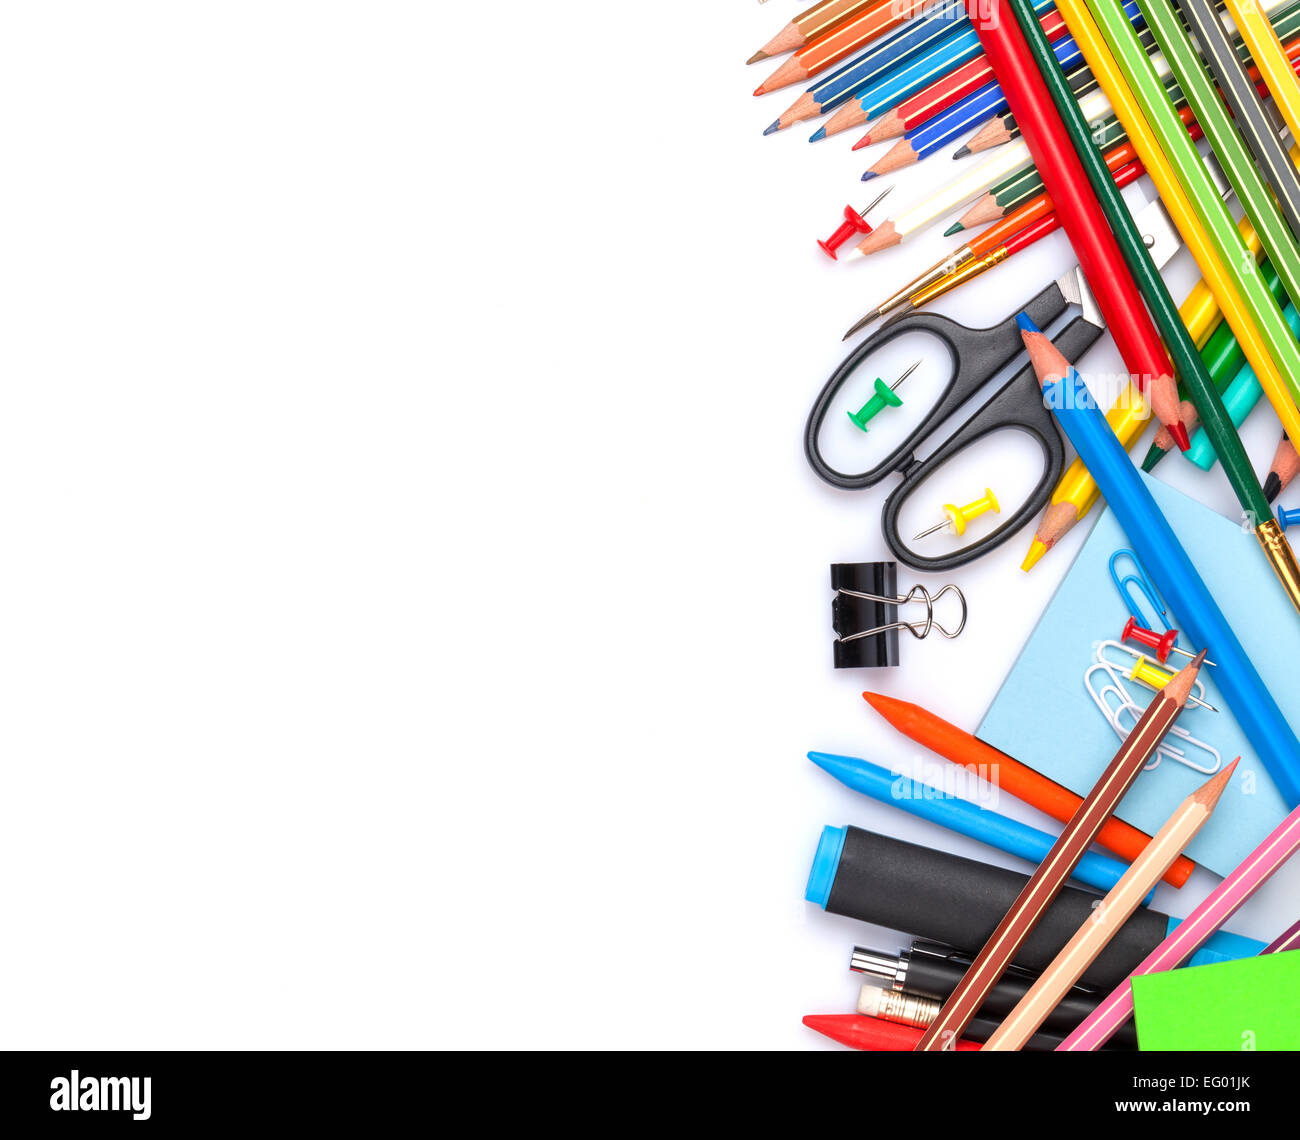 school and office supplies  top view  isolated on white